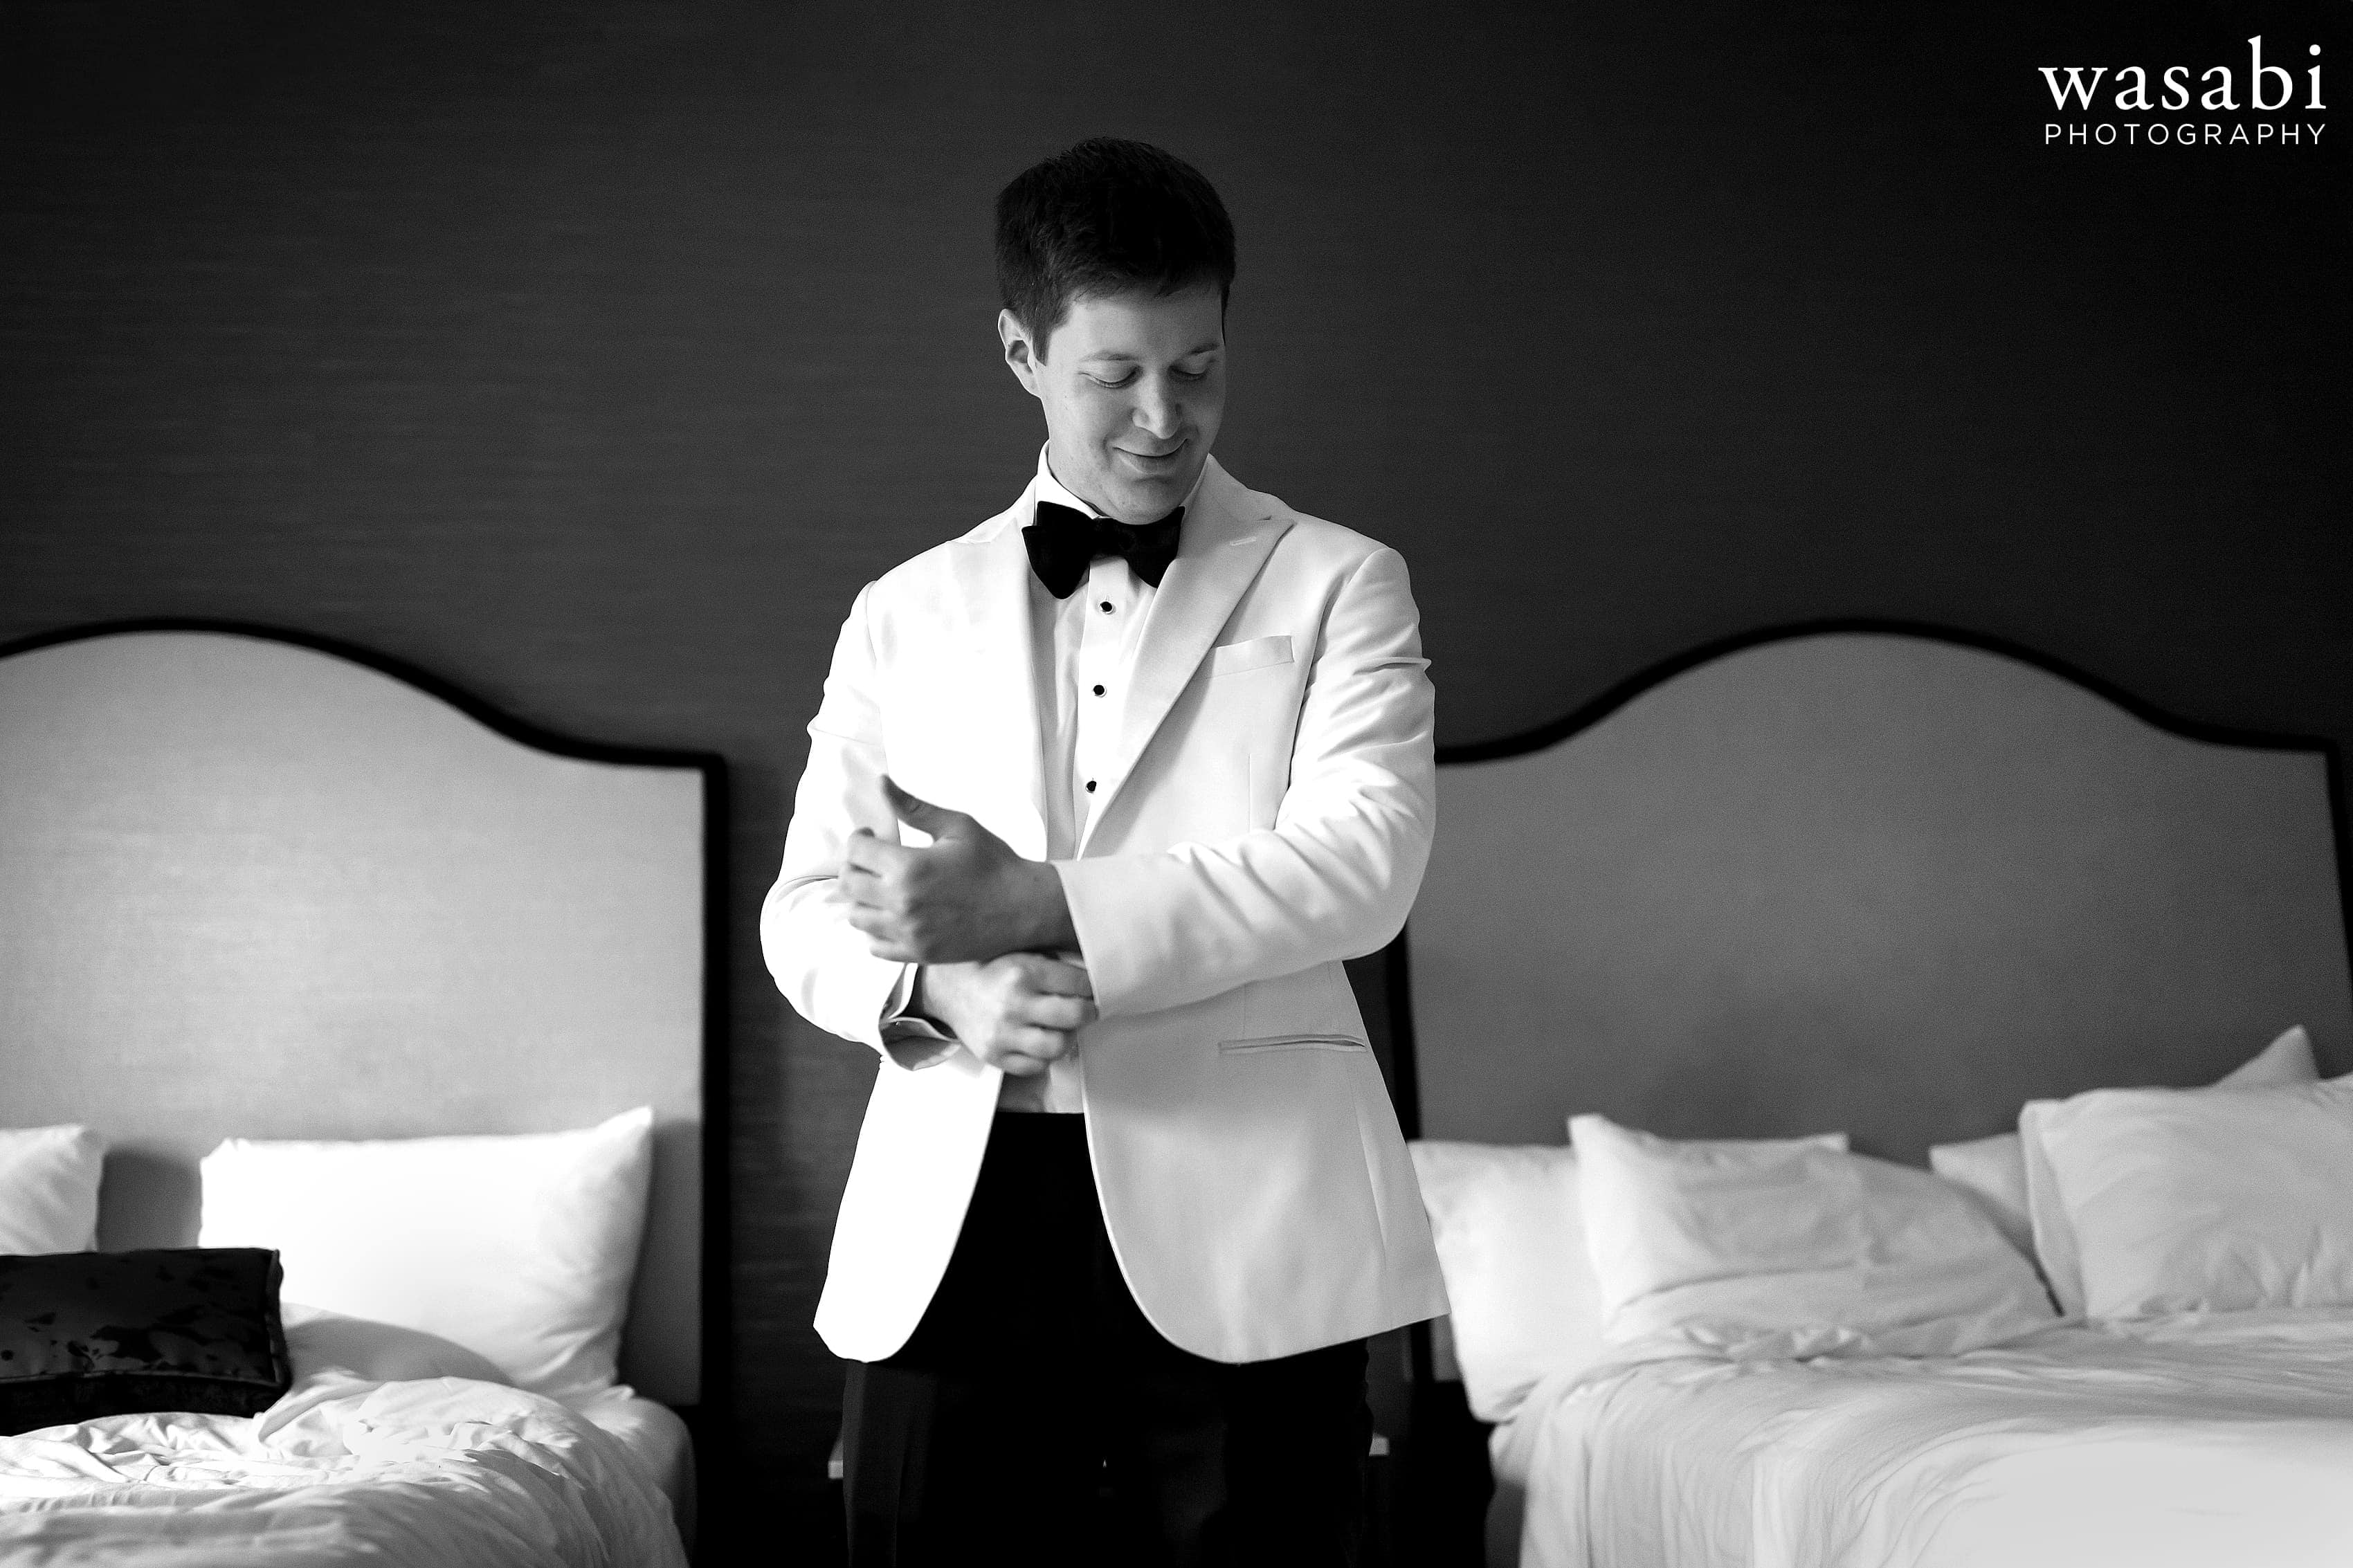 Groom adjusts his jacket while getting ready for wedding at InterContinental Chicago Magnificent Mile Hotel